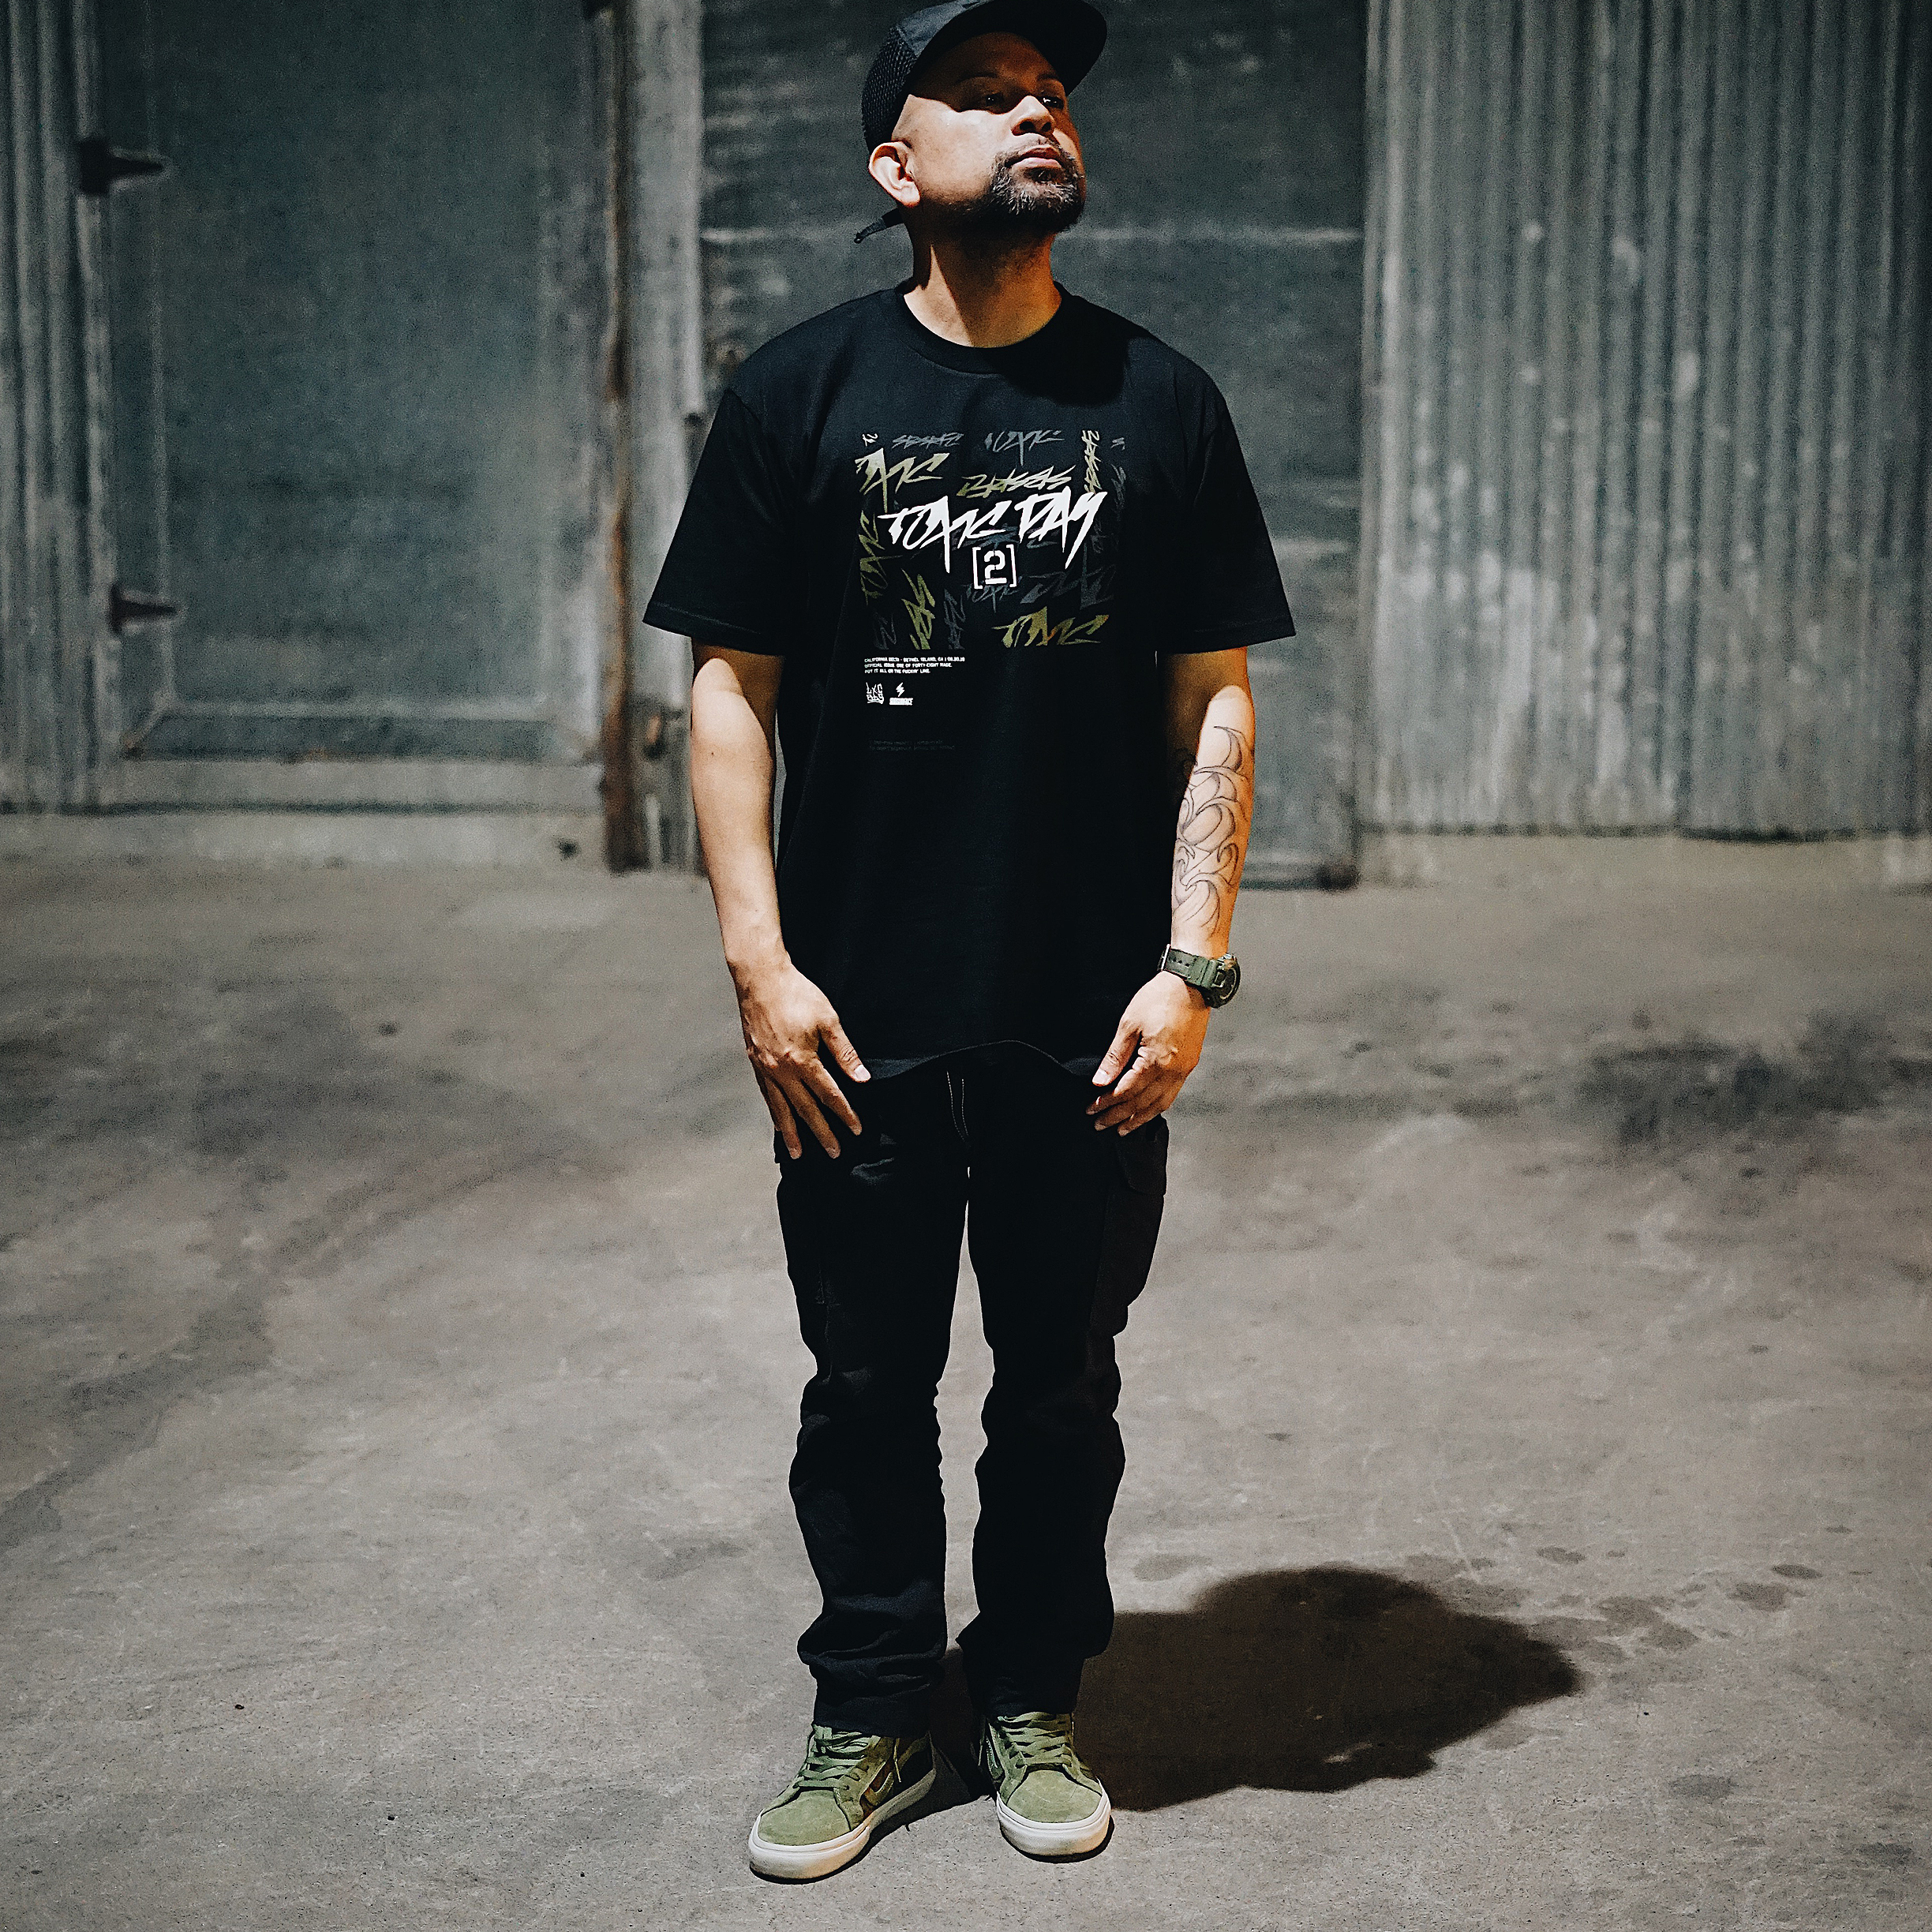 SBSRFC_Product_Image_Toxic_Day_2_Tee_14.jpg